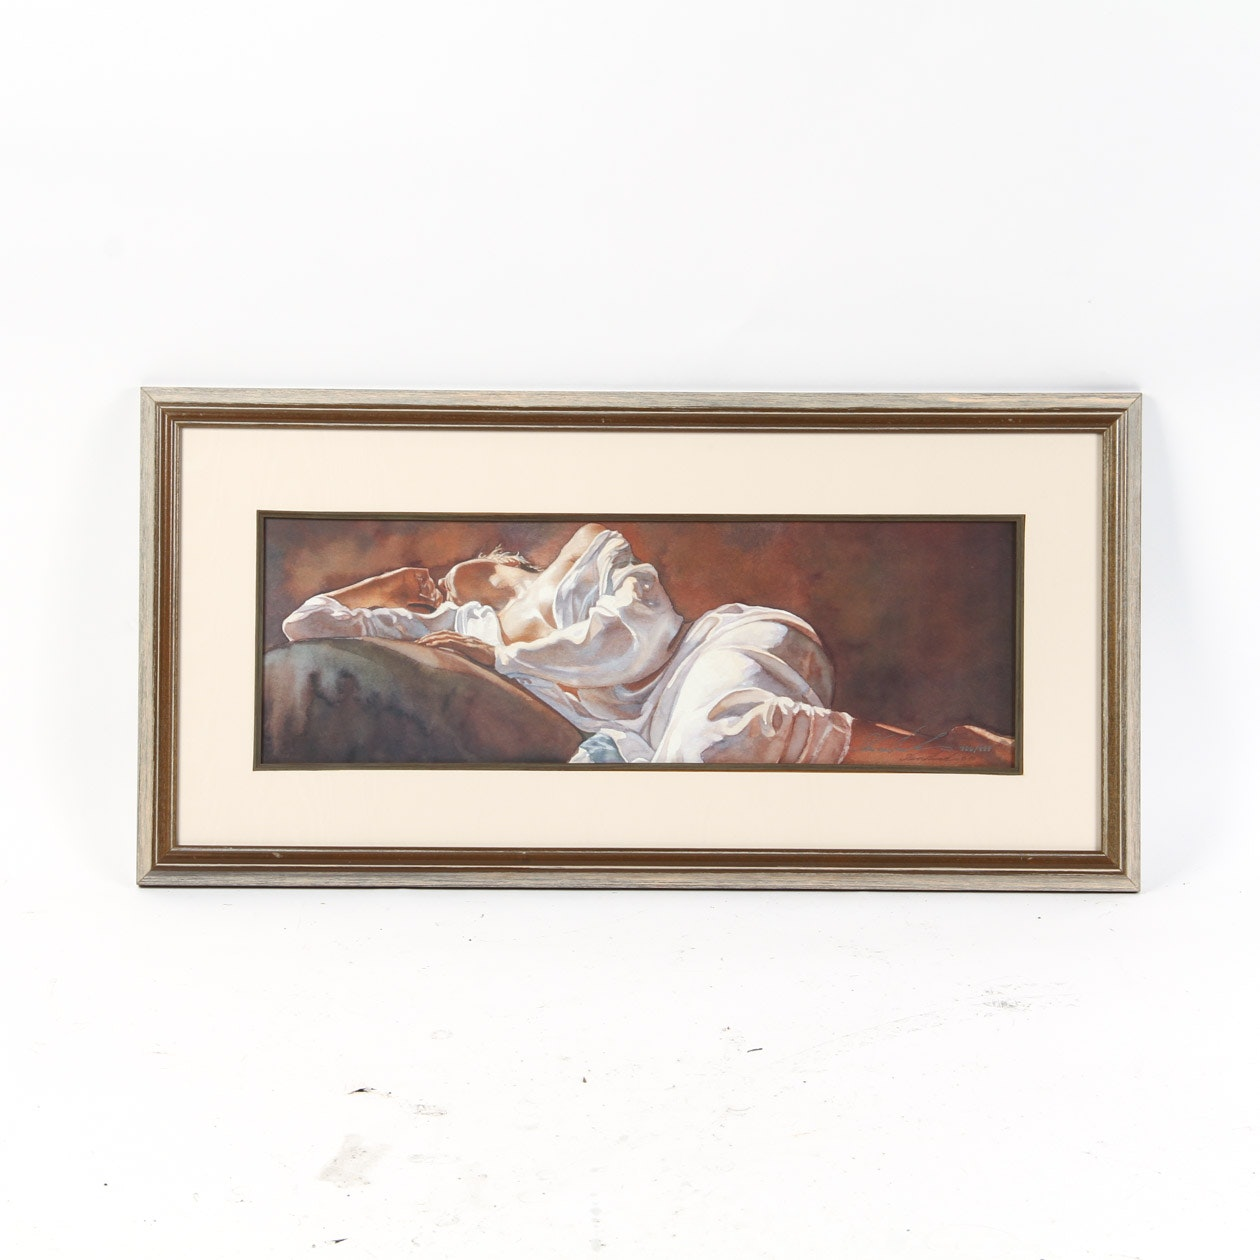 """Steve Hanks Signed Limited Edition Lithograph """"Emotional Appeal"""" with COA"""